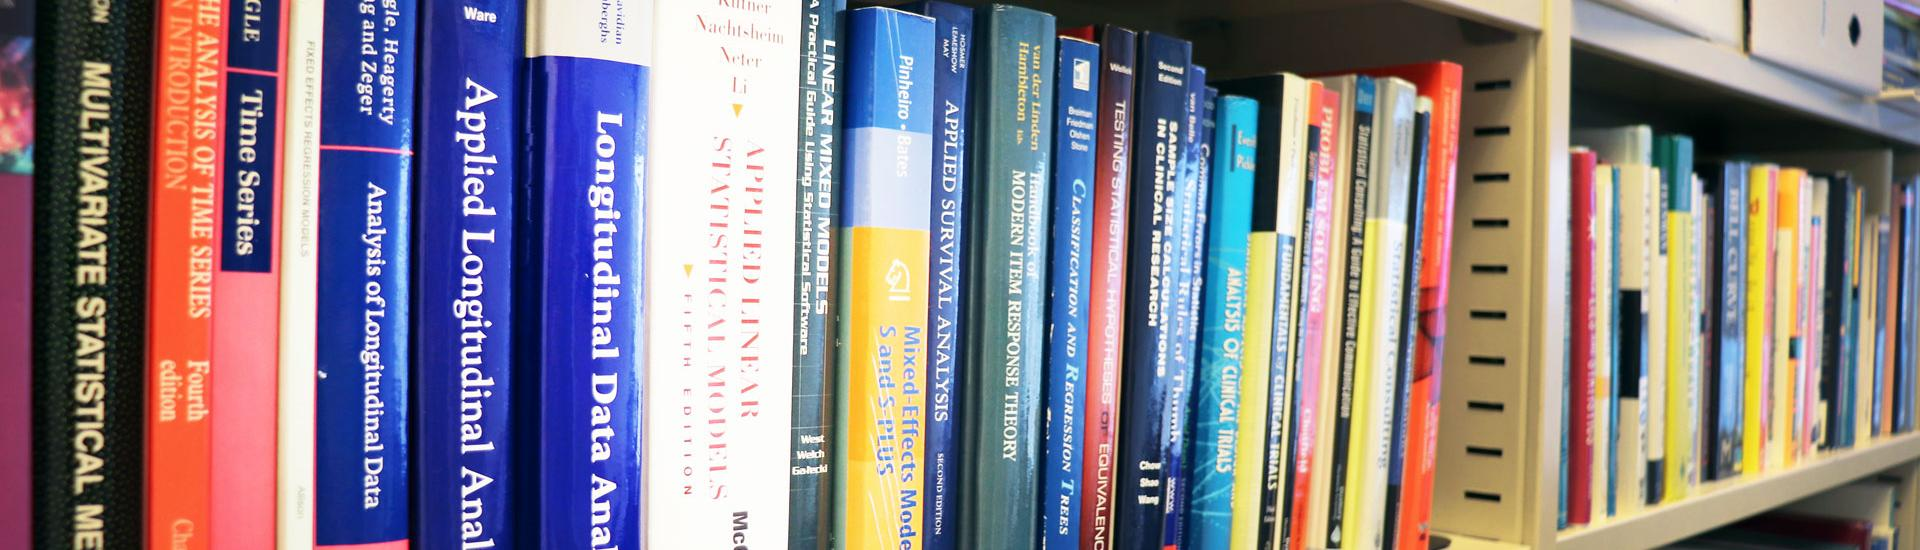 Image of statistical sciences books on a shelf